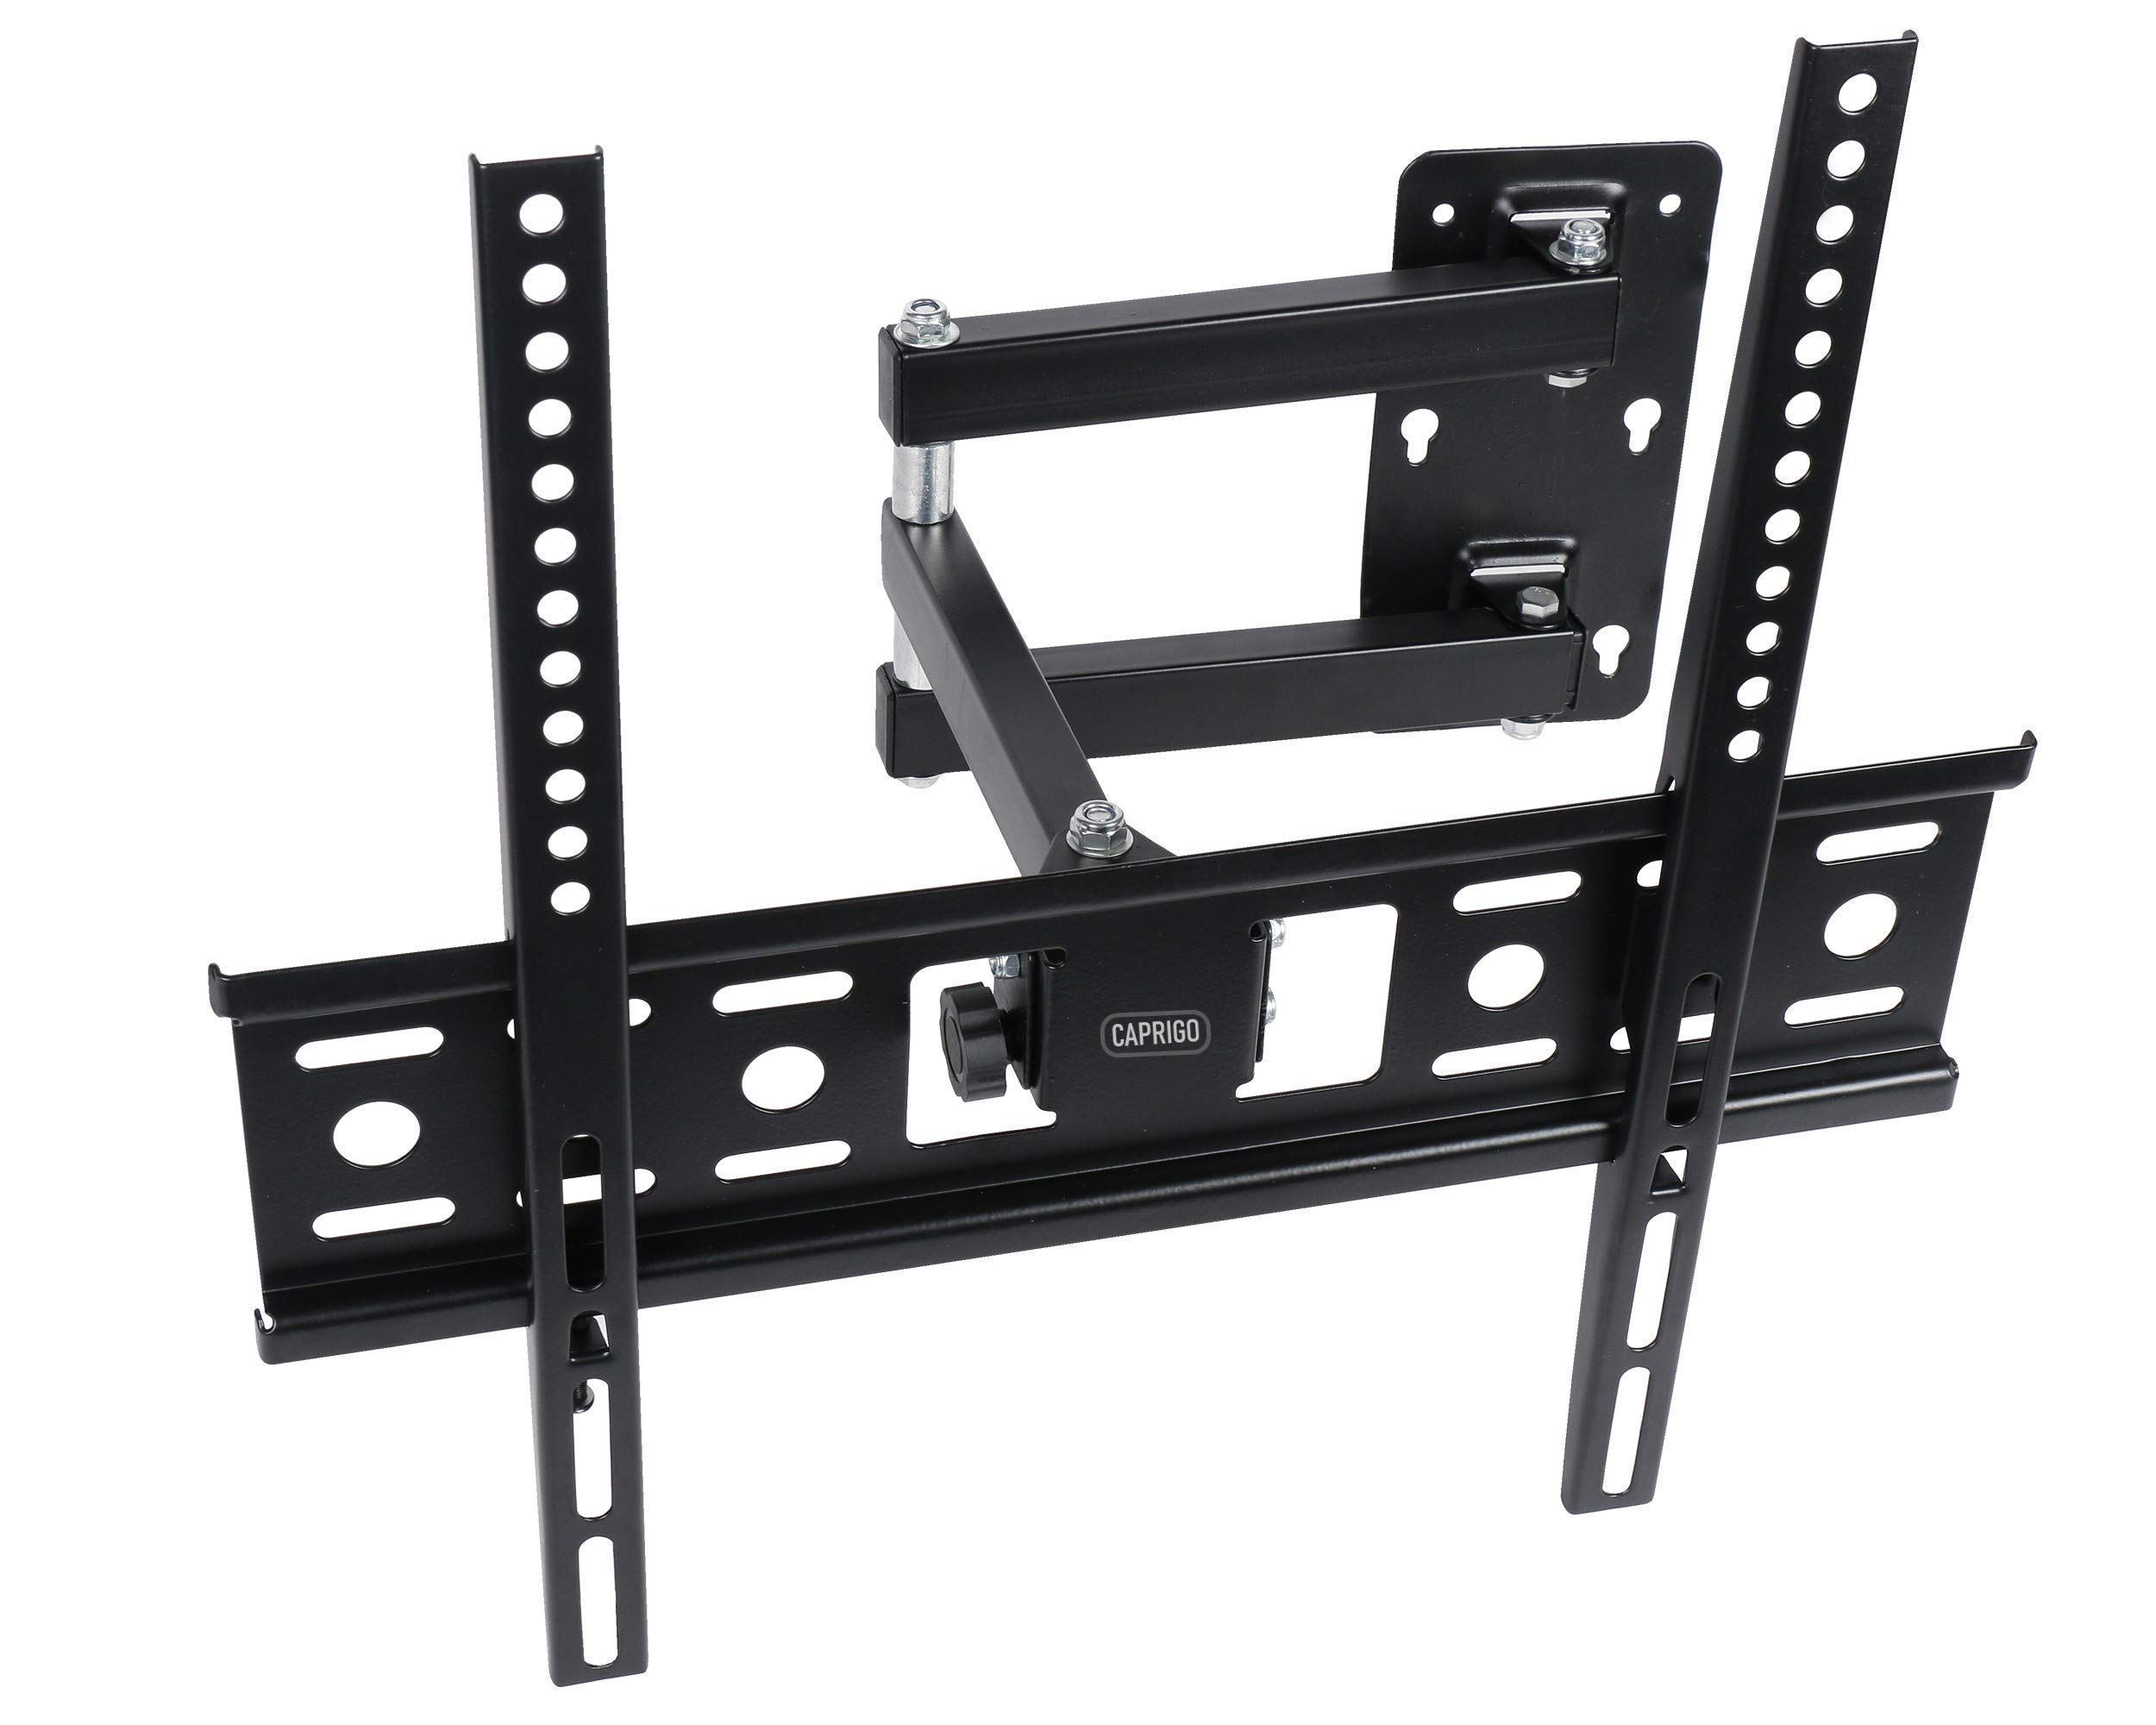 Caprigo Universal Heavy Duty TV Wall Mount Bracket for 24 to 40 inches LED/4K/QLED/HD/Smart TV, Full Motion Swivel Rotatable TV Wall Stand (Black - M455) (B07YQRXQ89) Amazon Price History, Amazon Price Tracker